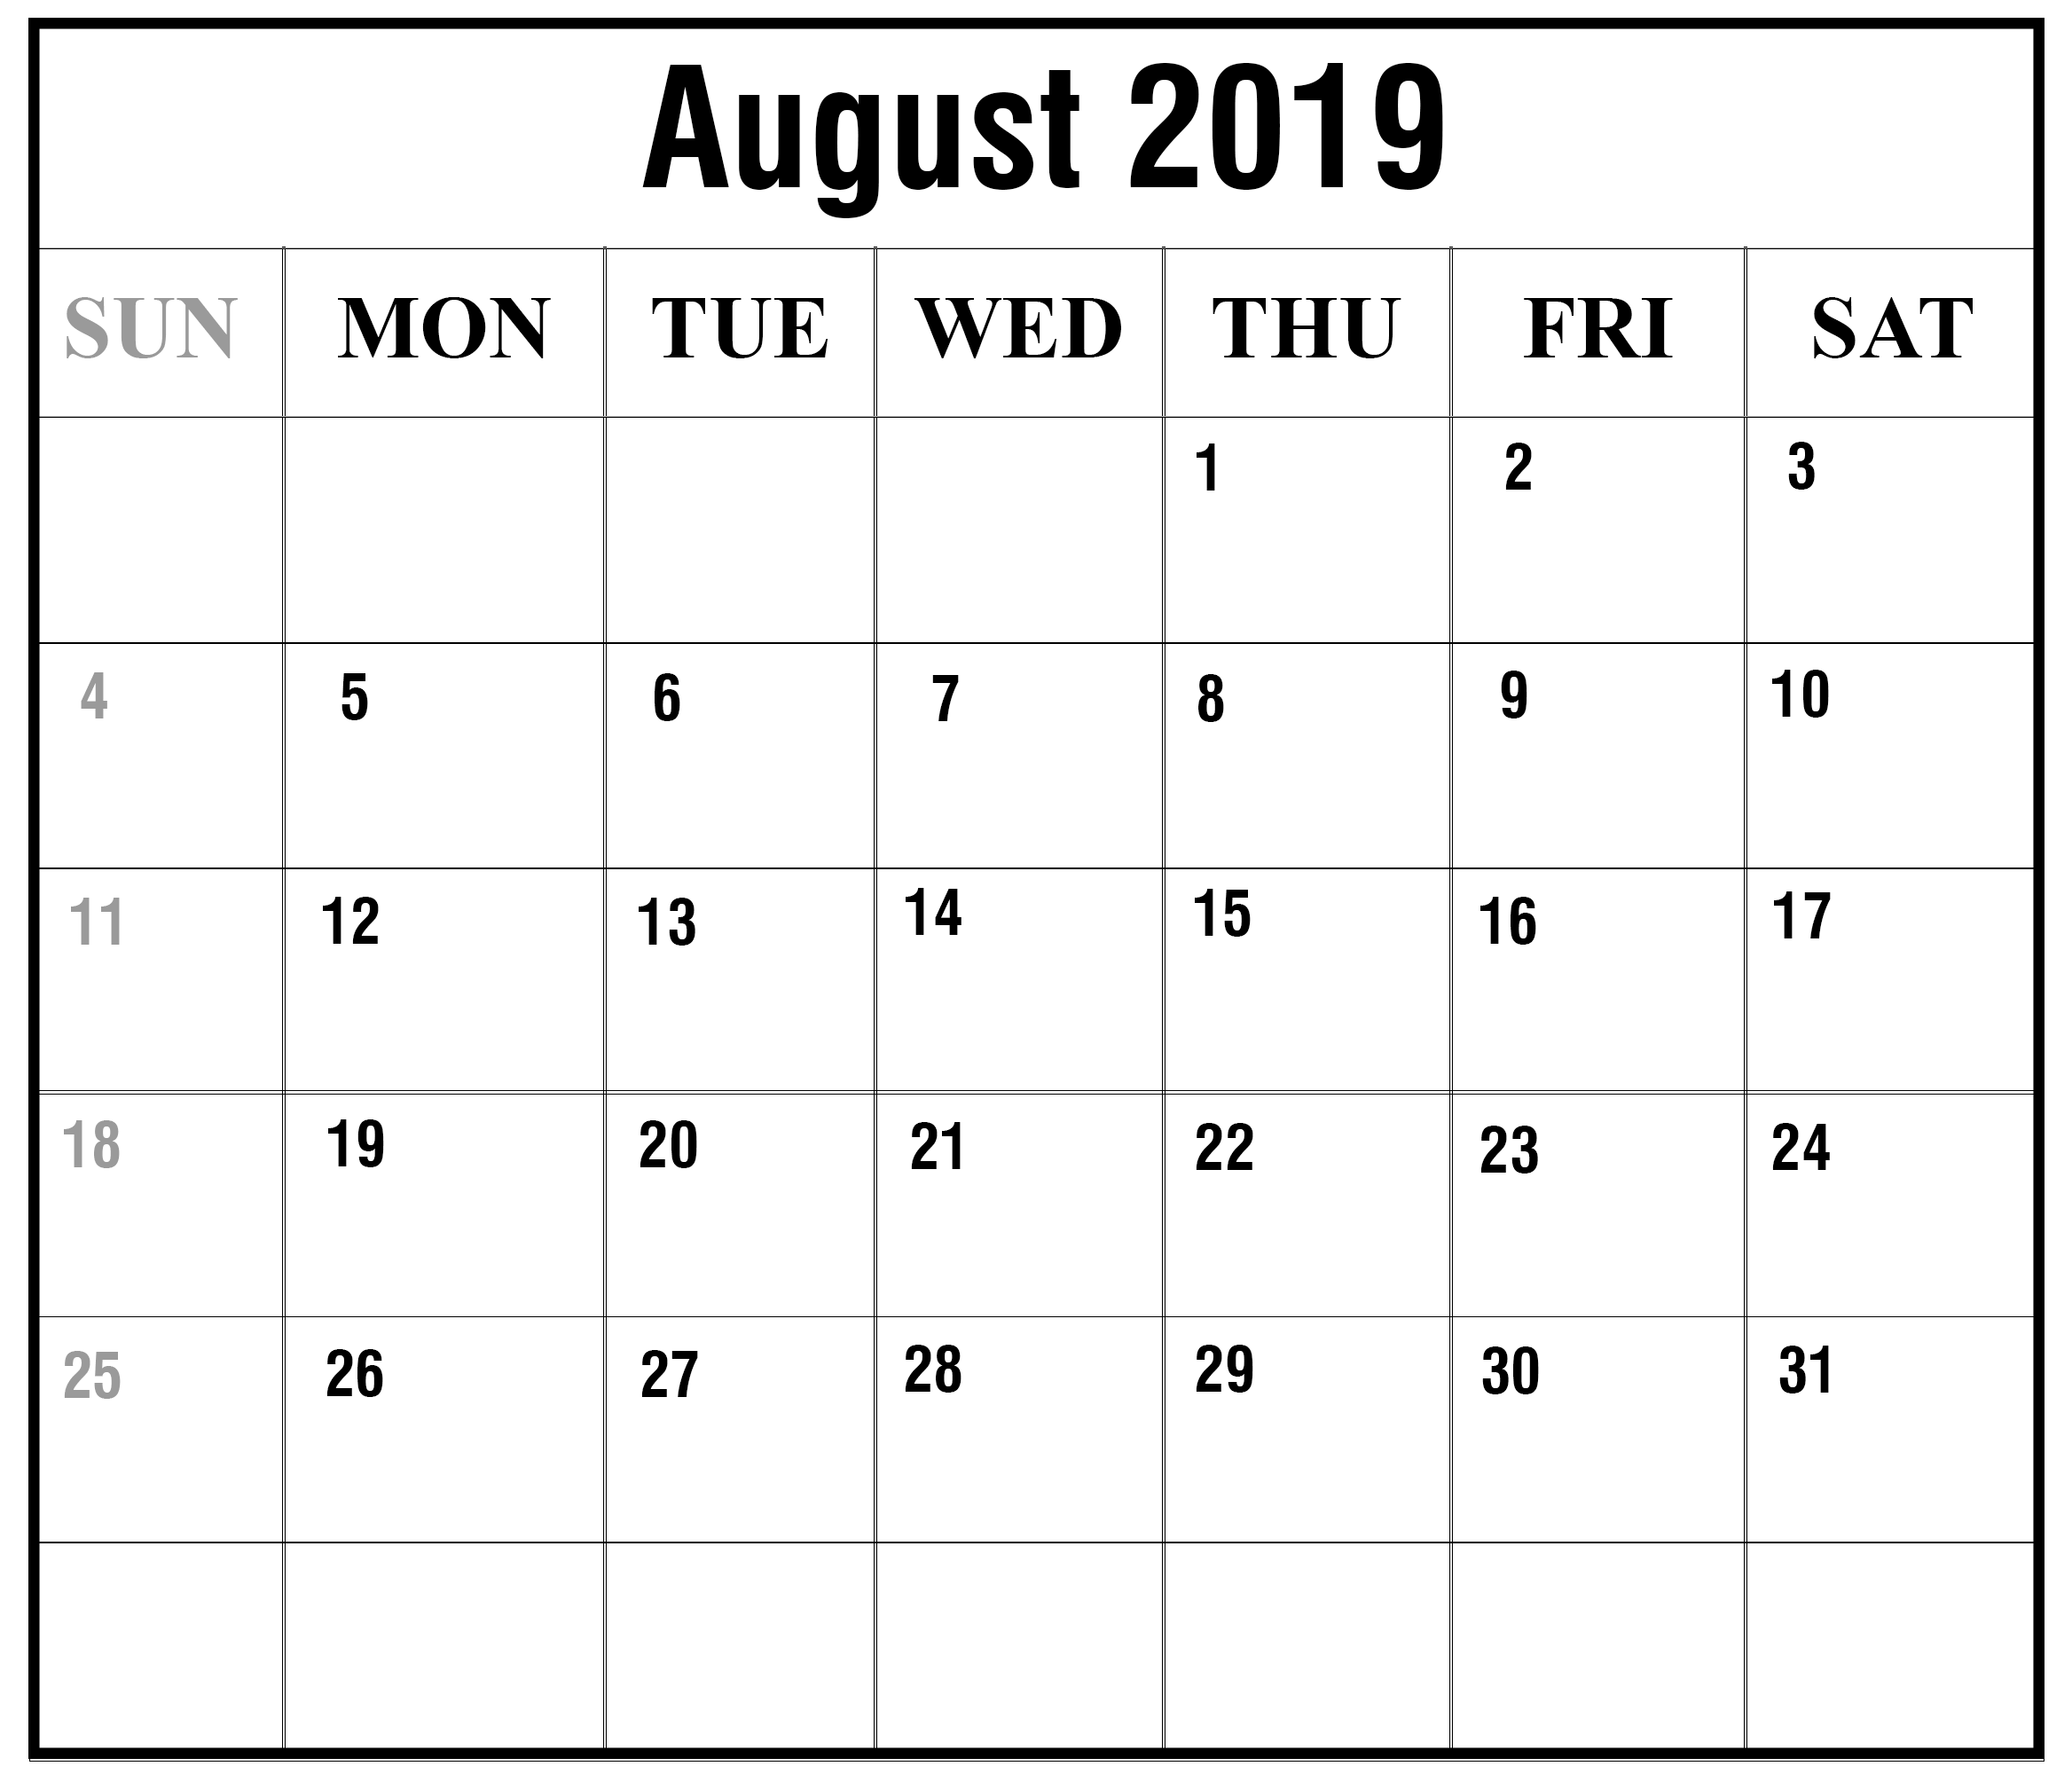 August 2019 Calendar With Holidays.Printable August 2019 Calendar With Holidays Pdf Excel Word